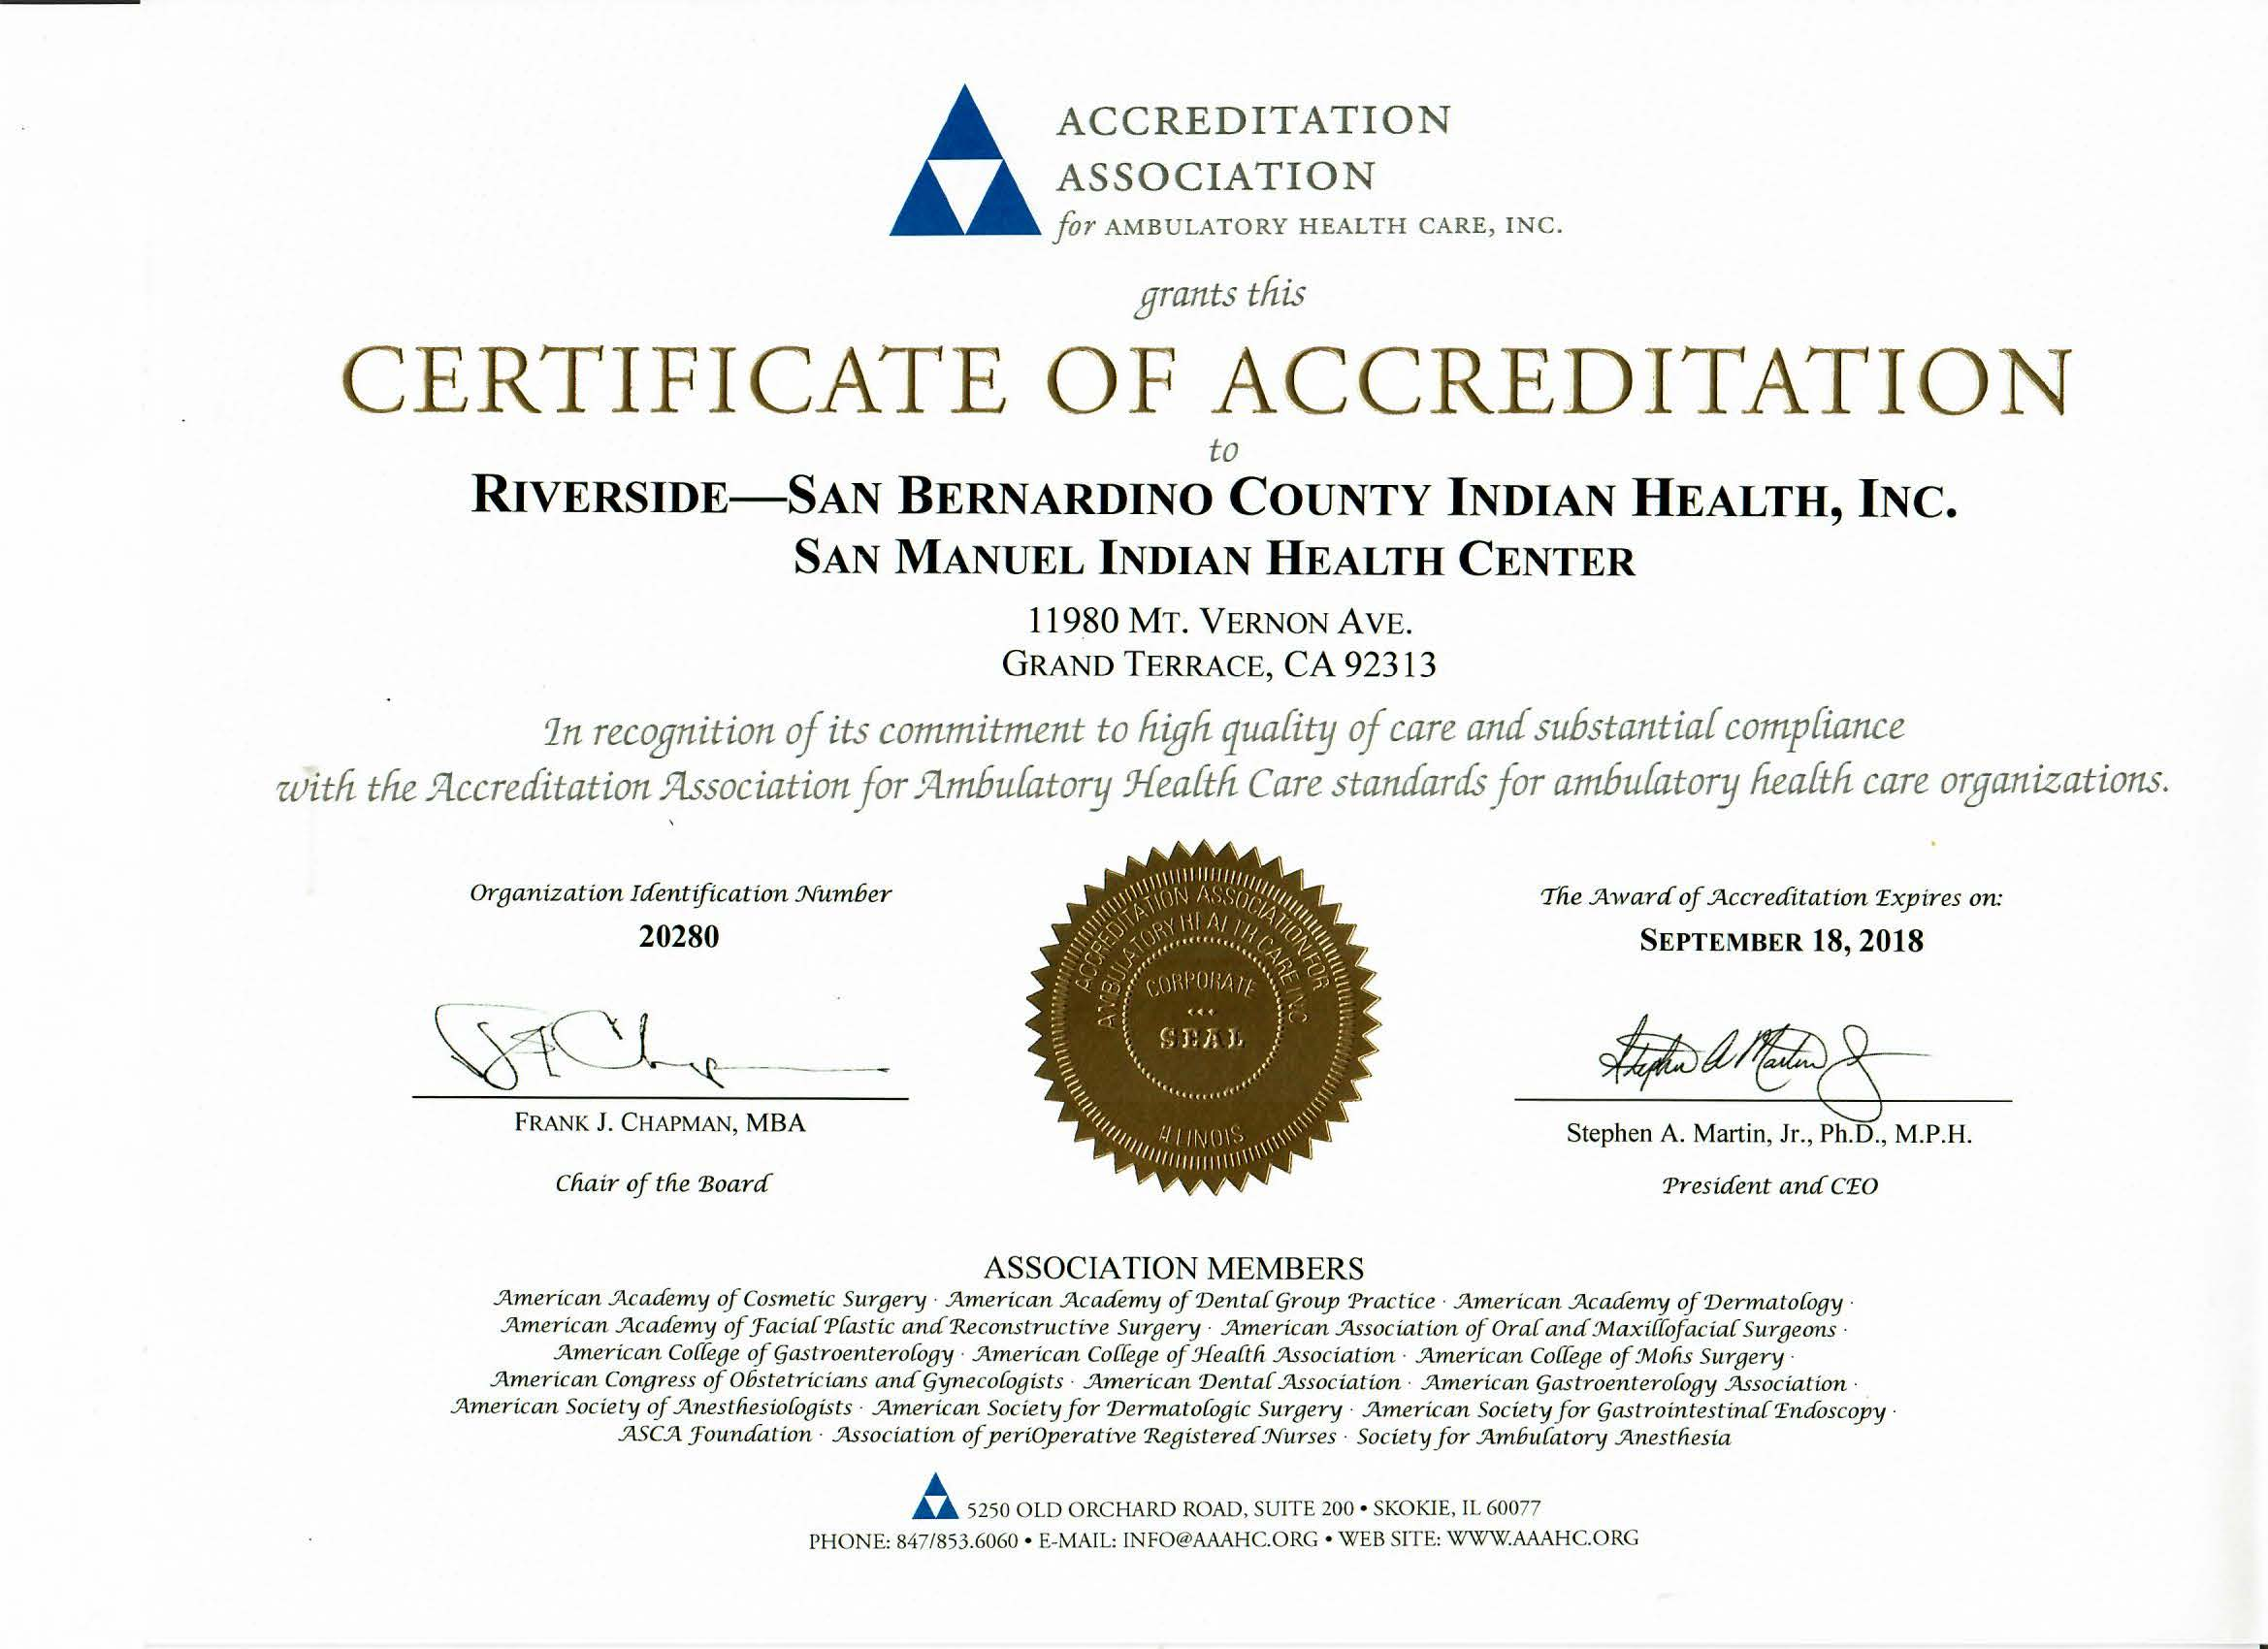 AAAHC Accreditation Notice 2015